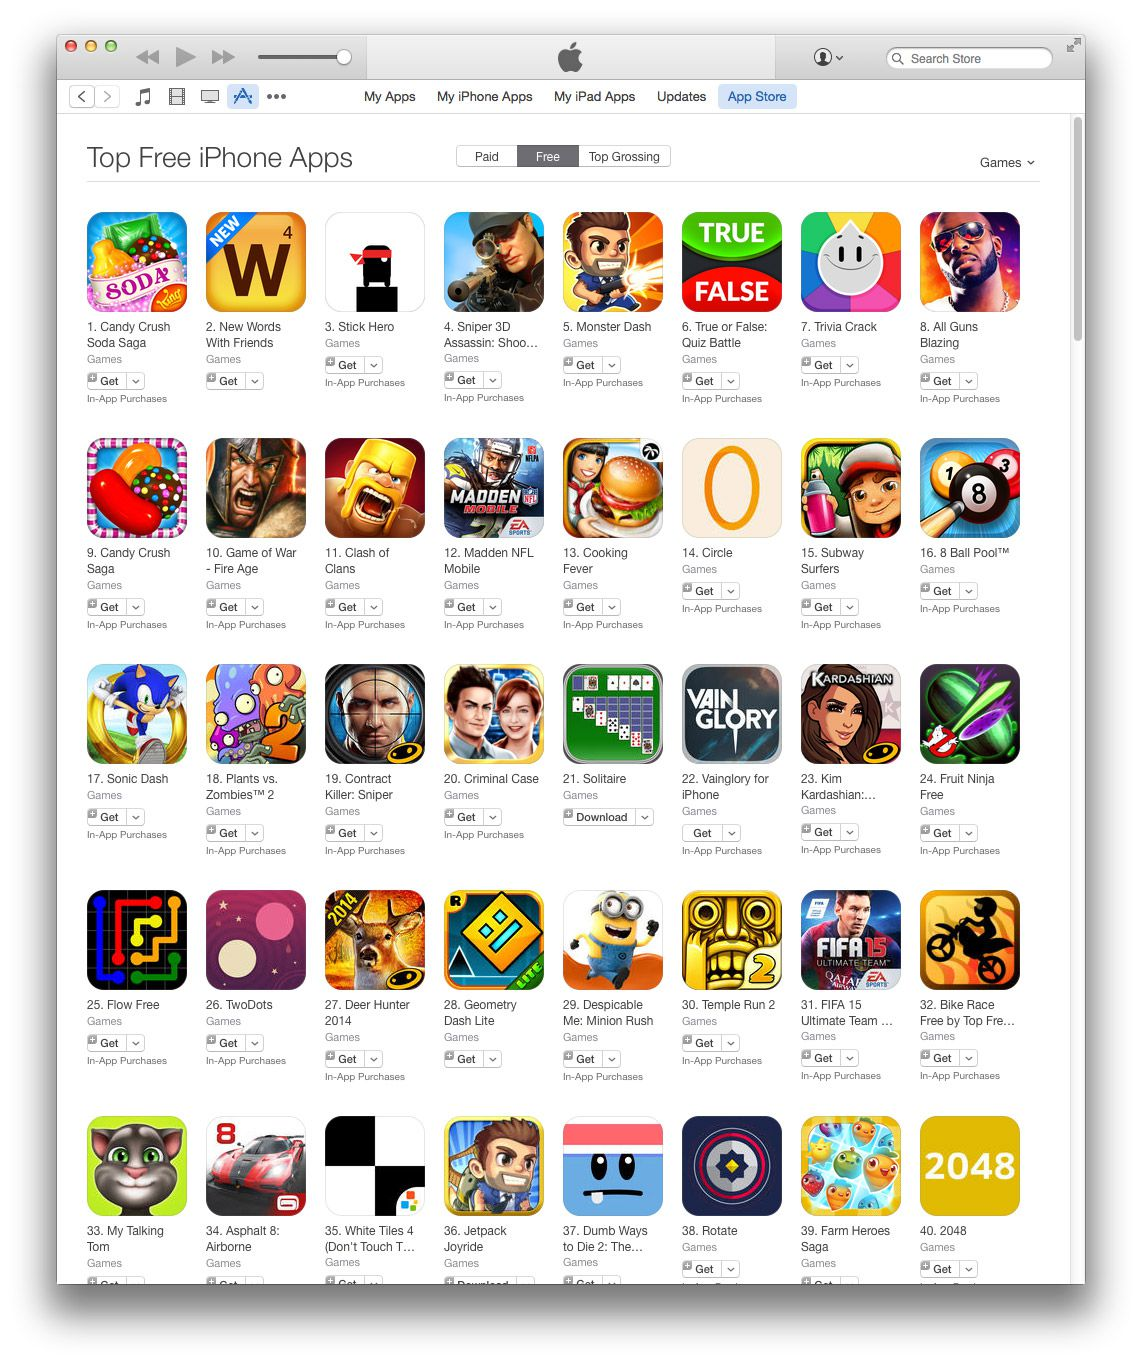 free iphone app games